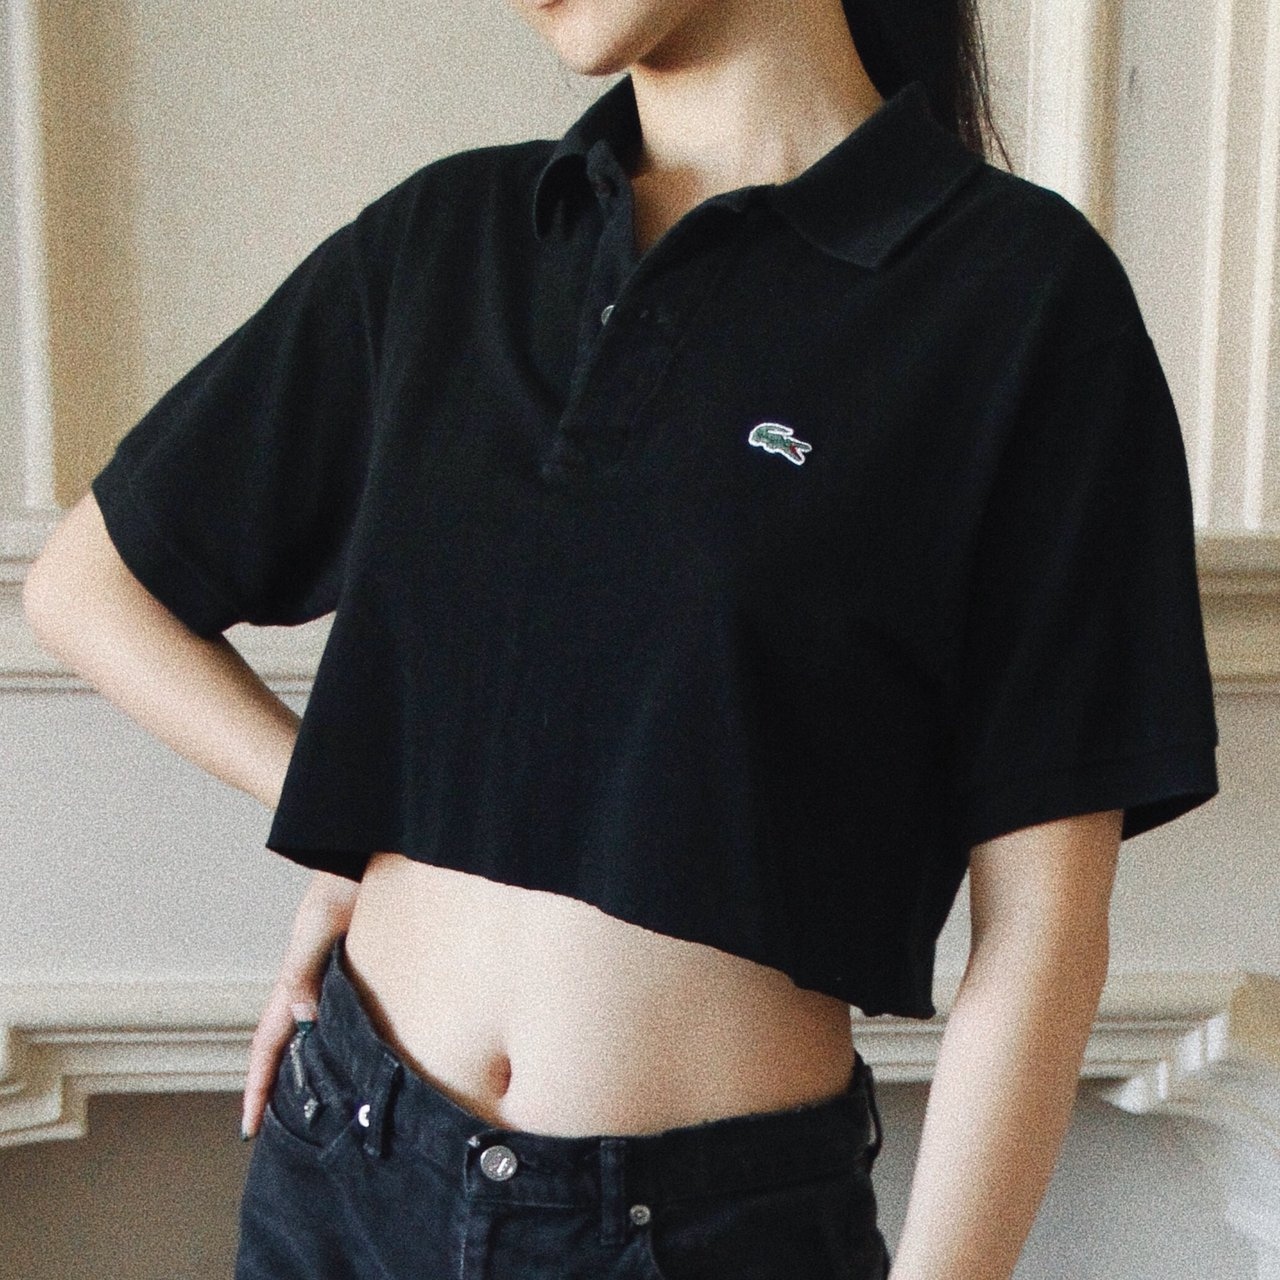 71d68a2673cb7 Lacoste cropped black polo shirt. Oversized on size S